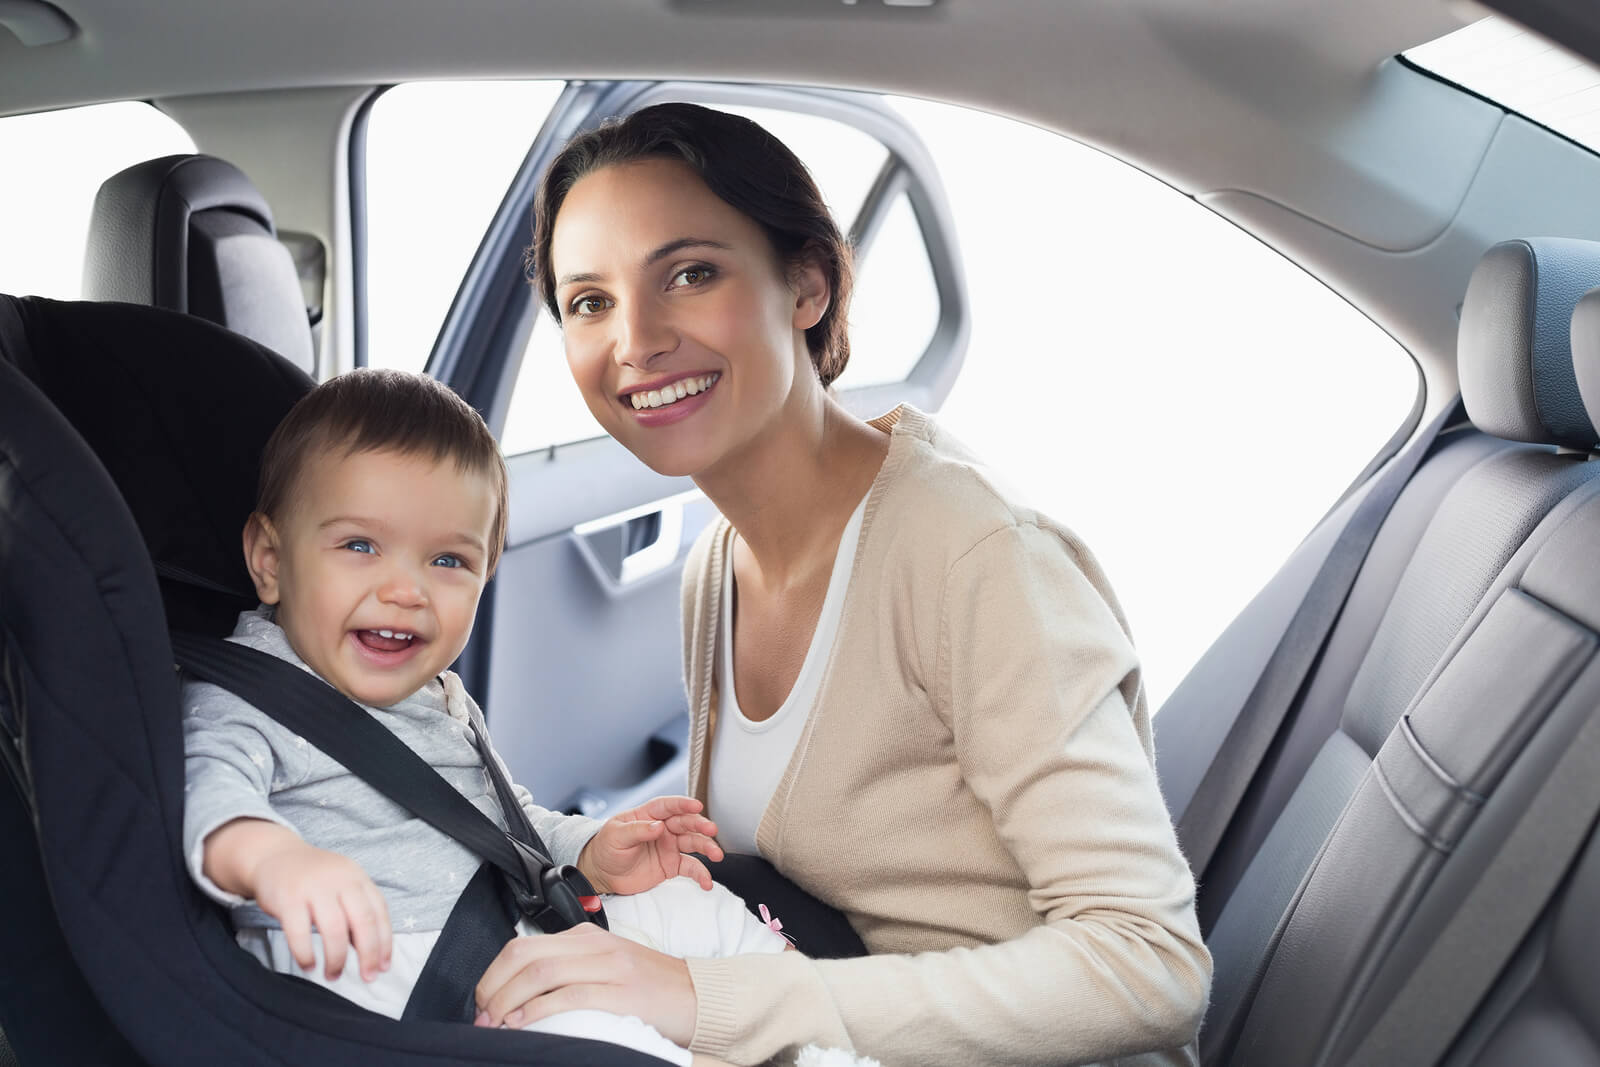 baby strapped into car seat with smiling parent about to begin a long car journey